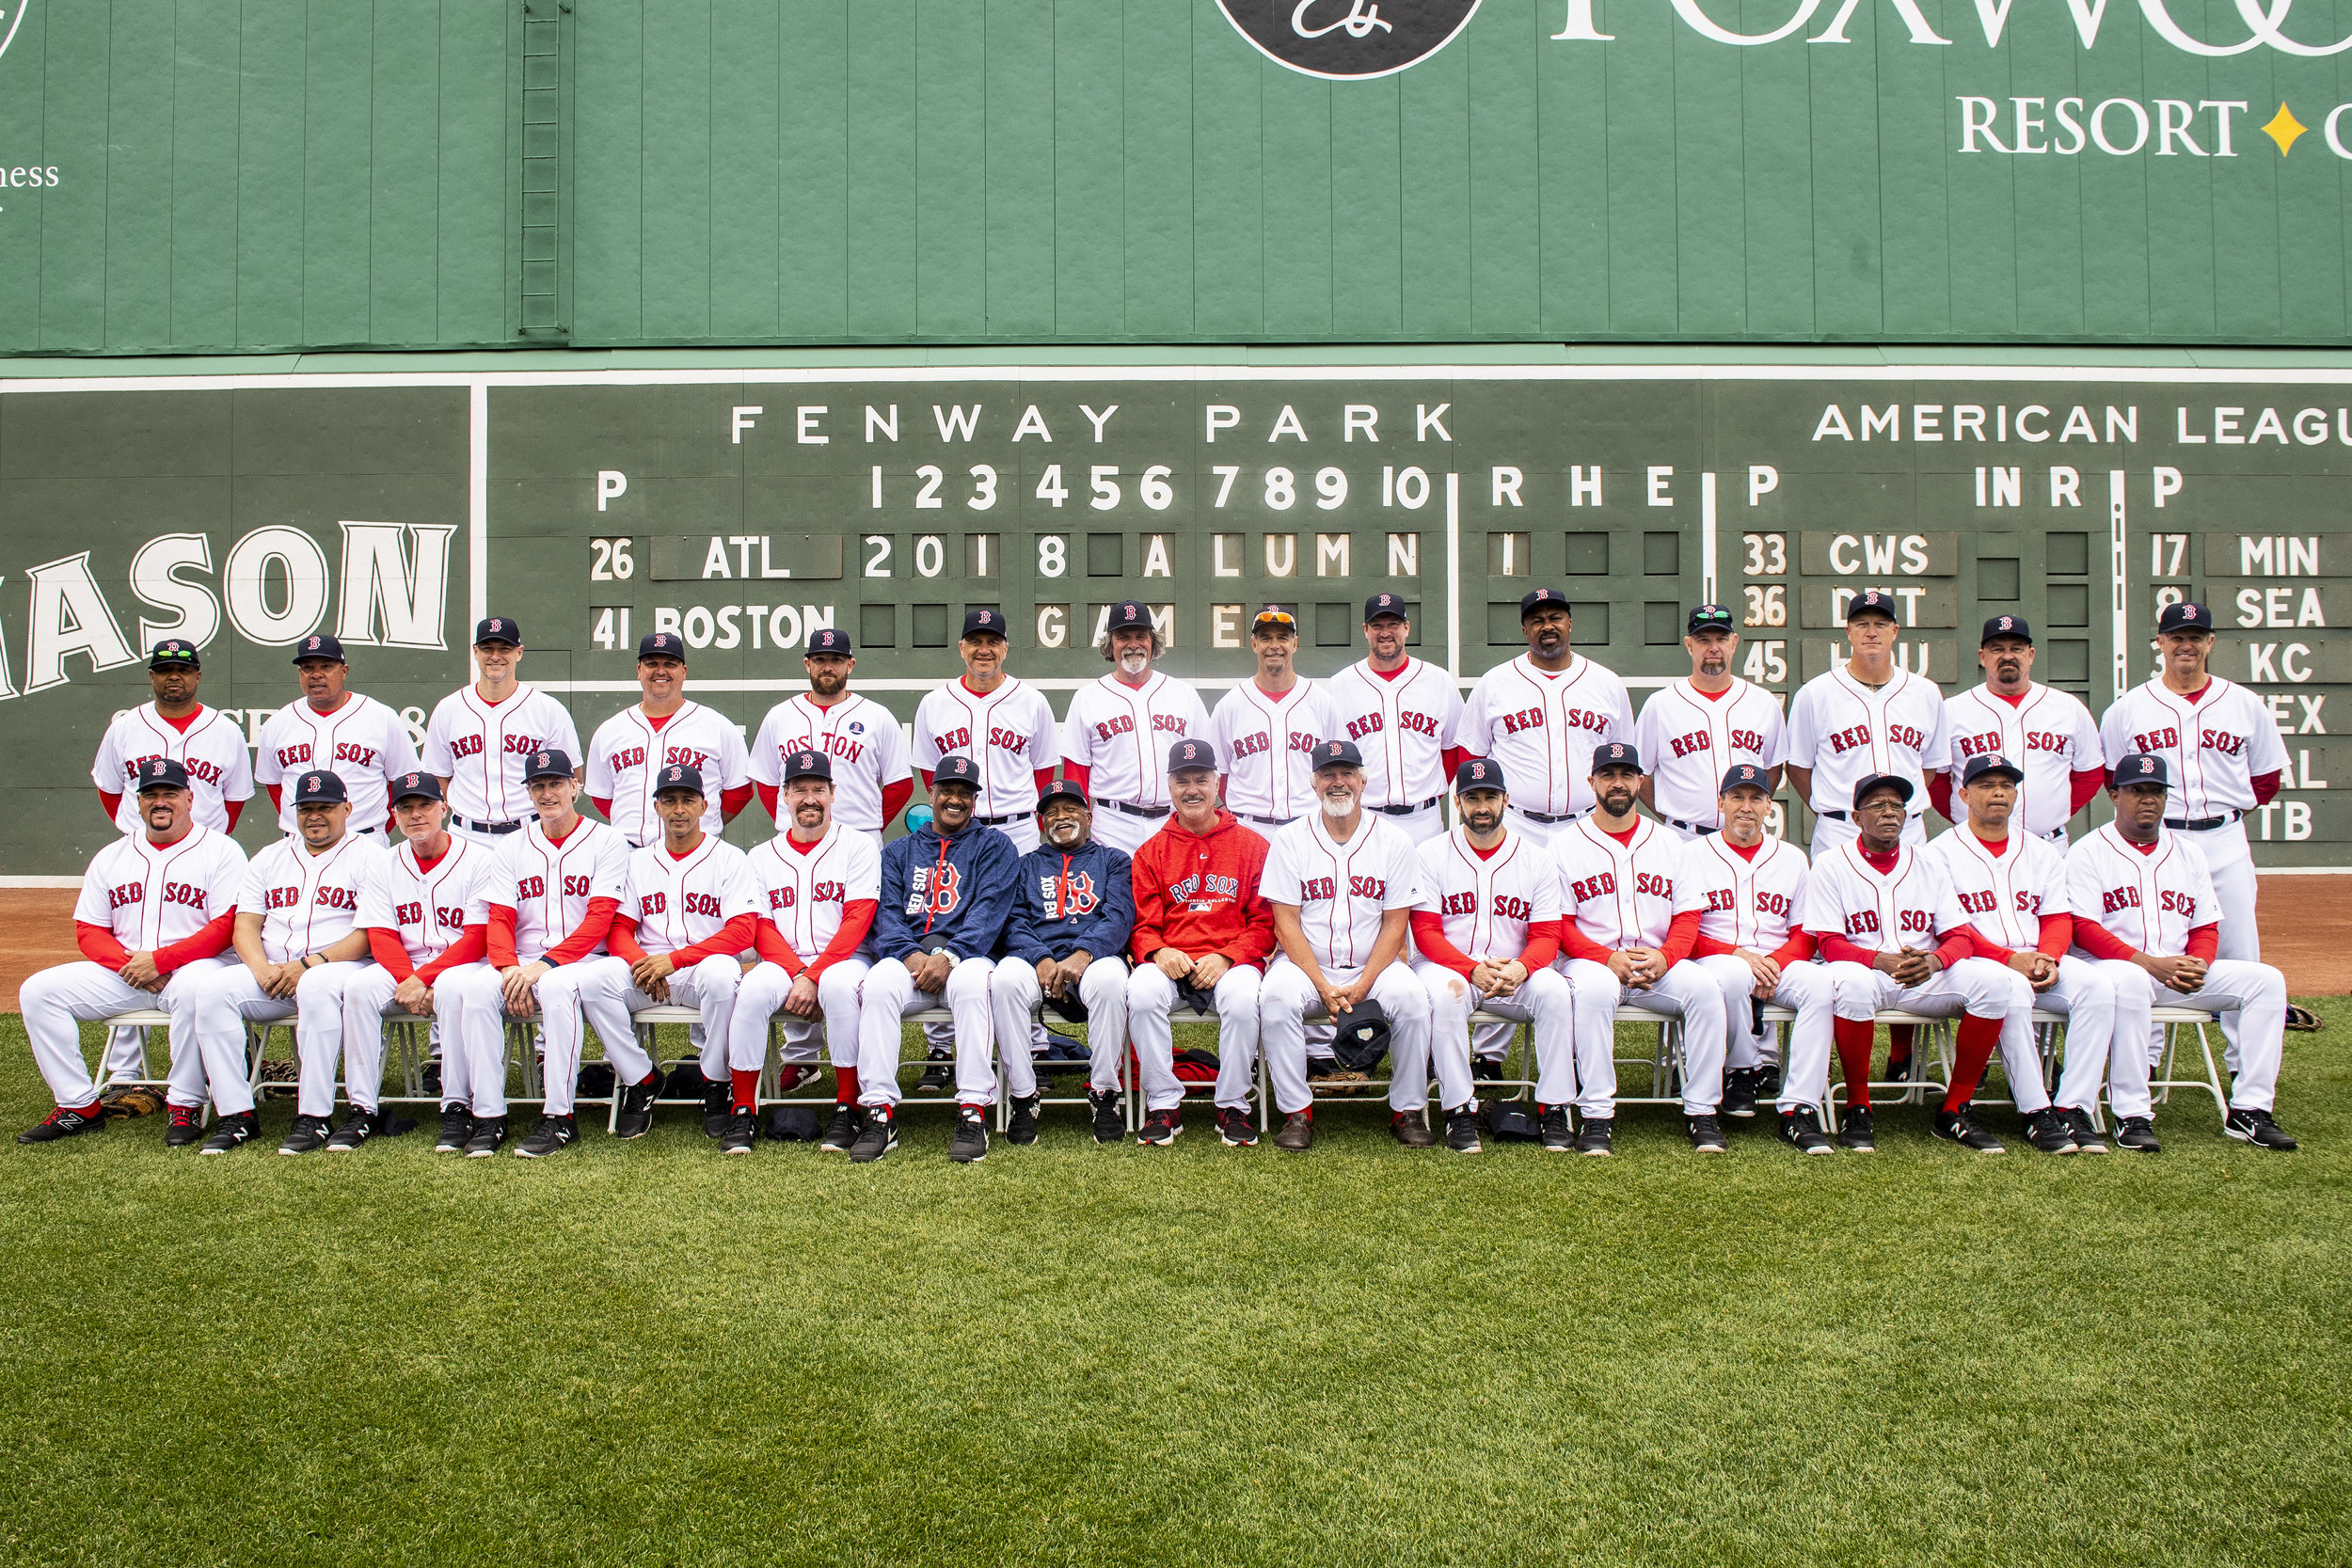 May 27, 2018, Boston, MA: Team Photo after the Red Sox Alumni Game at Fenway Park in Boston, Massachusetts on Sunday, May 27, 2018. (Photo by Matthew Thomas/Boston Red Sox)